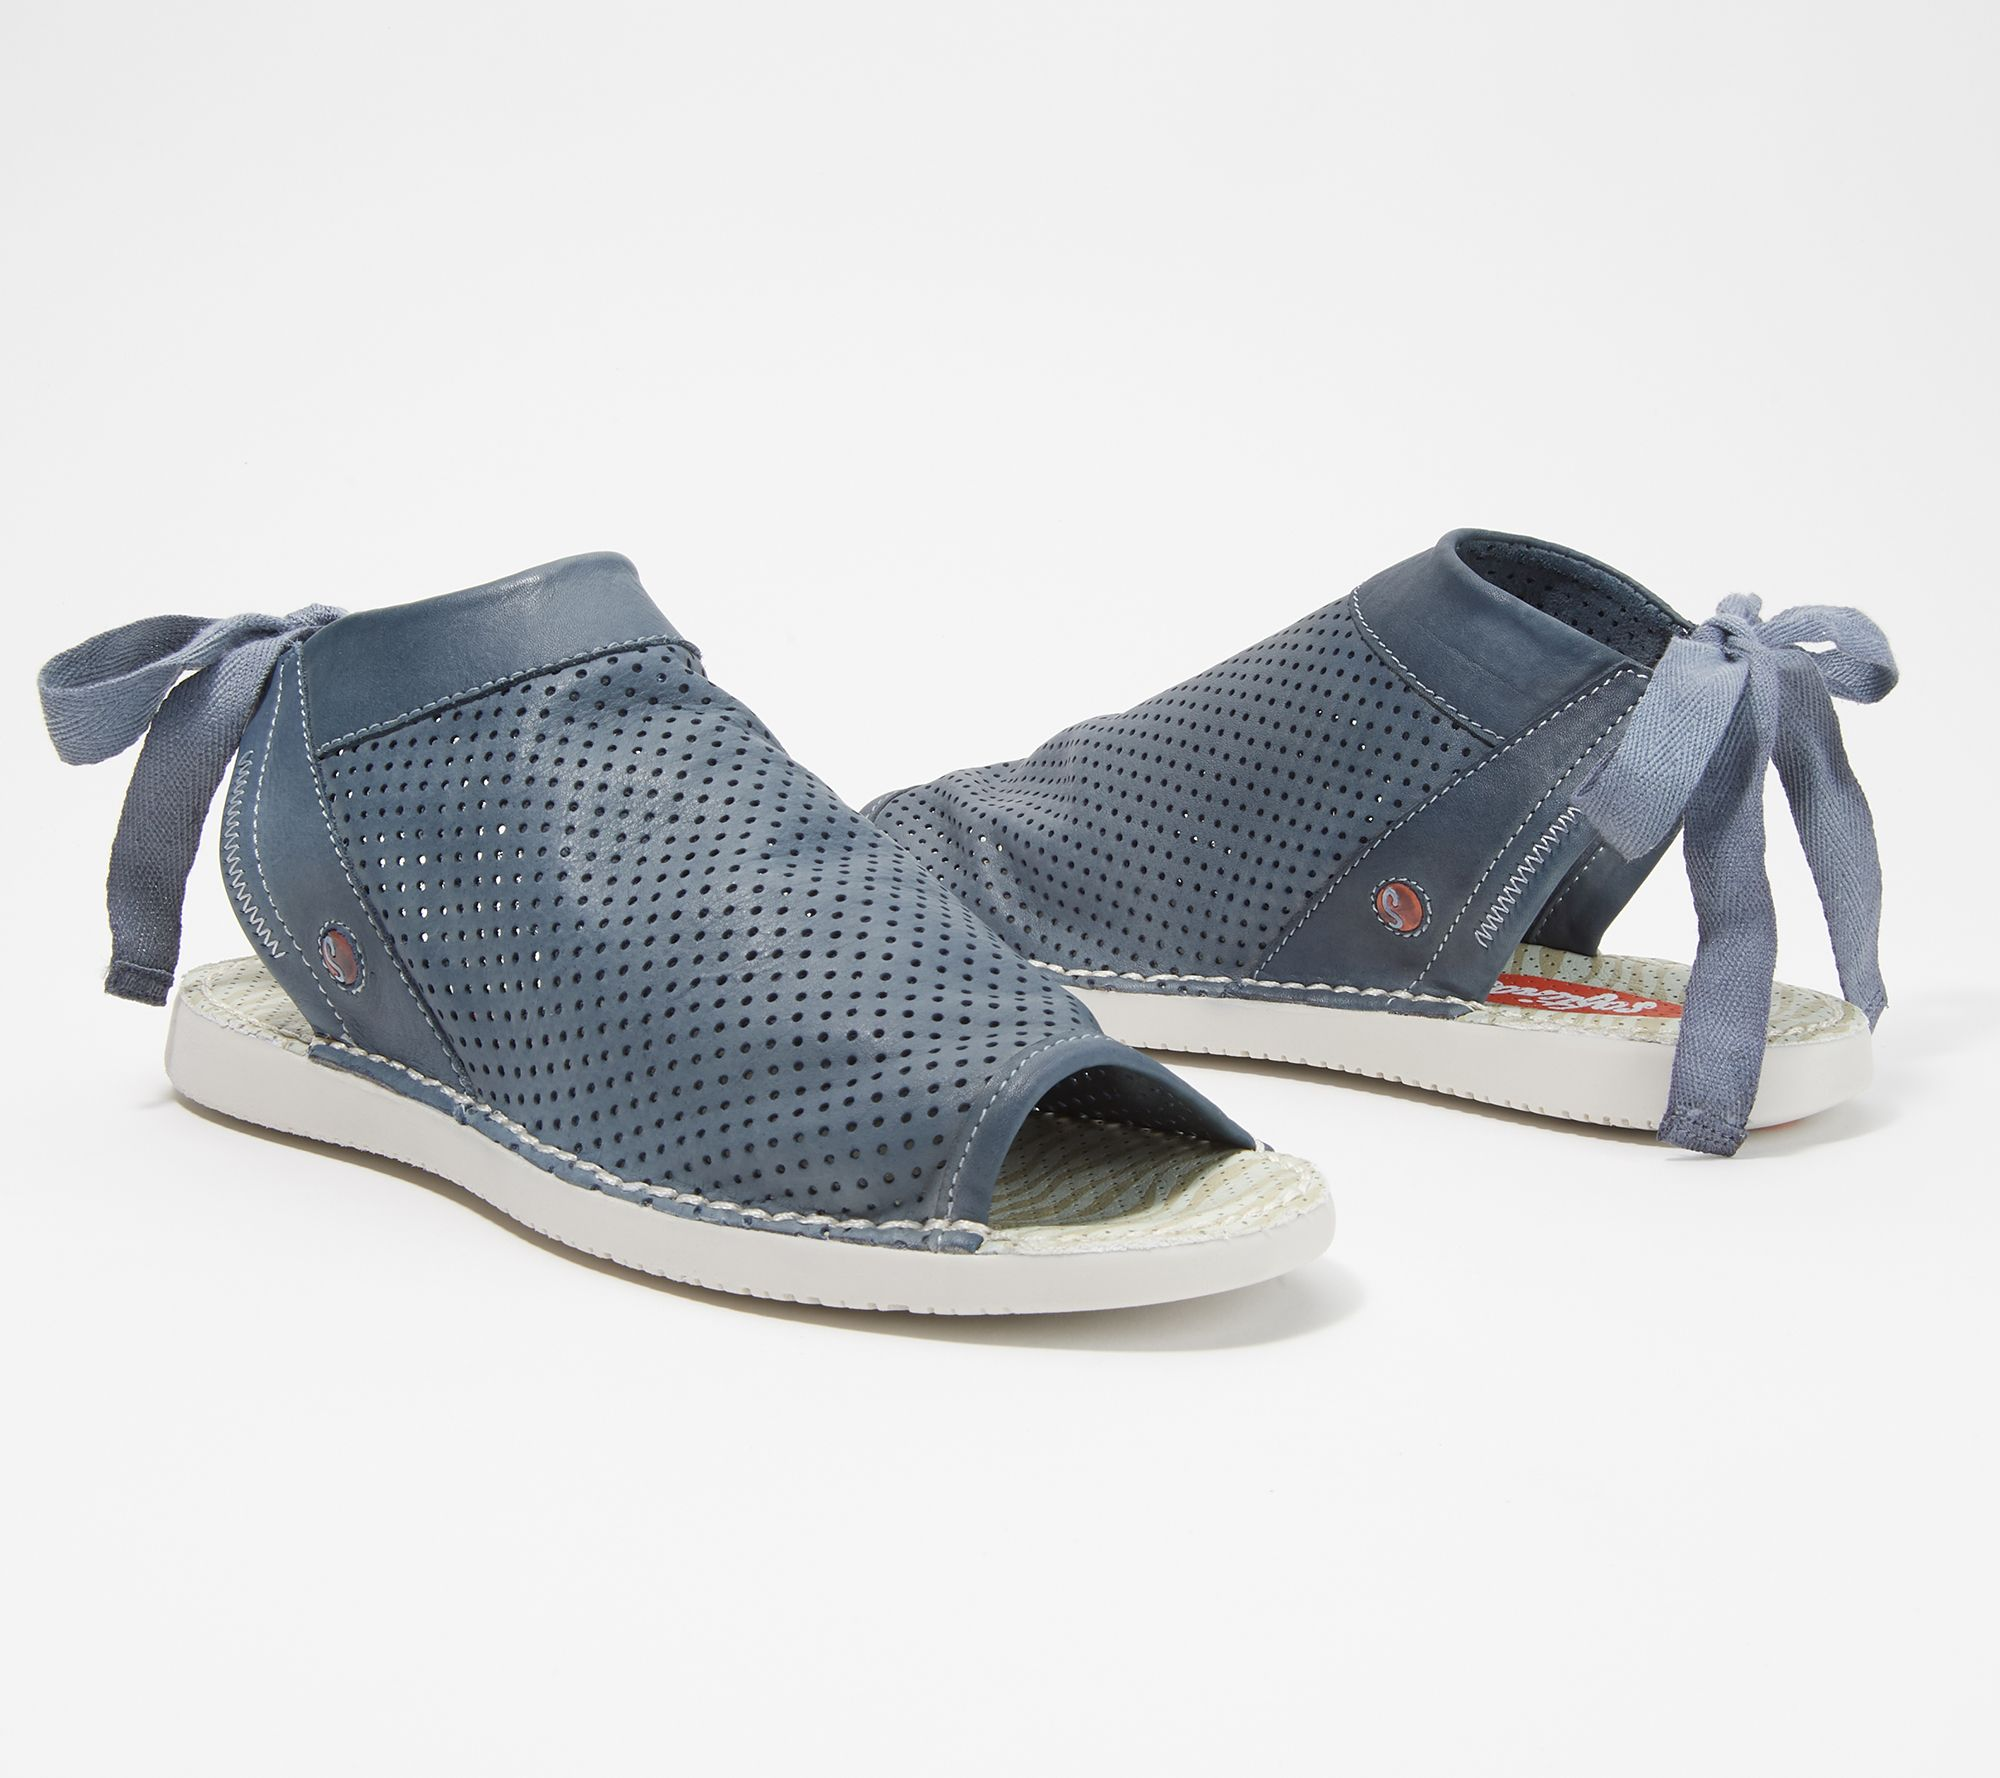 1aa7781df99 Softinos by FLY London Leather Tie-Back Sandals - Tre - Page 1 — QVC.com